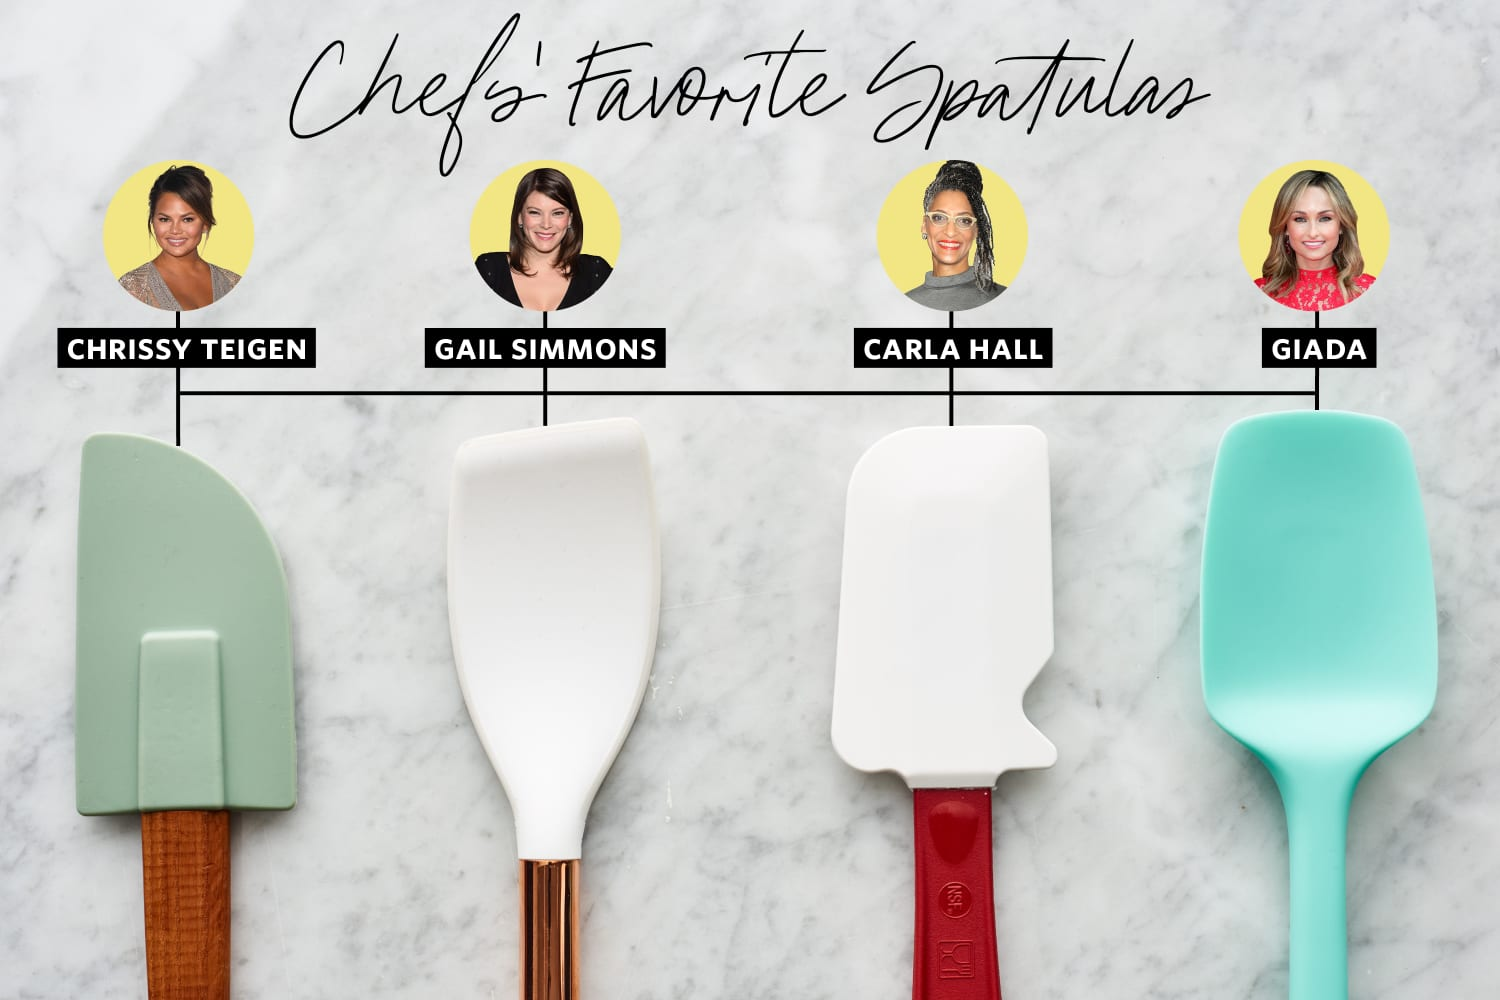 We Tested the Favorite Spatulas of Carla Hall, Chrissy Teigen, Giada De Laurentiis, and Gail Simmons. Here's the One We Liked Best.